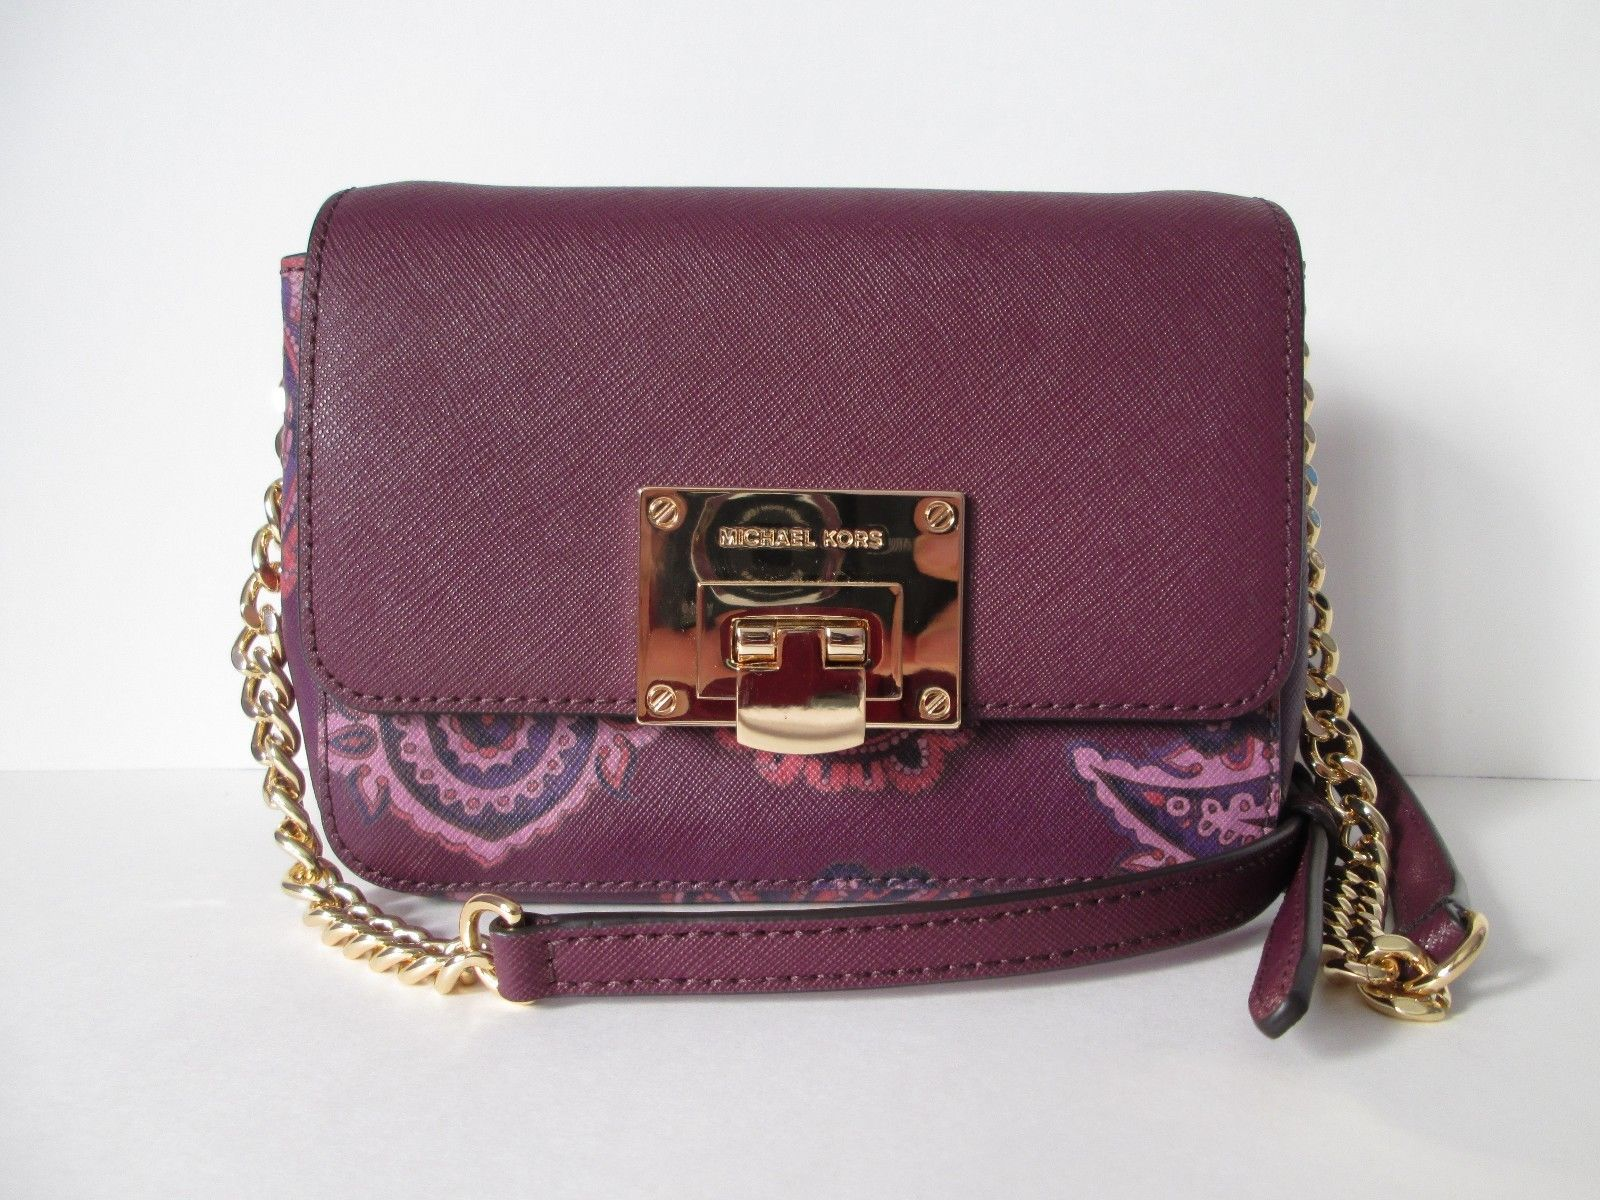 deaf9b284d4c S l1600. S l1600. Previous. NWT MICHAEL KORS TINA SMALL CLUTCH PLUM LEATHER CHAIN  Crossbody Handbag $228